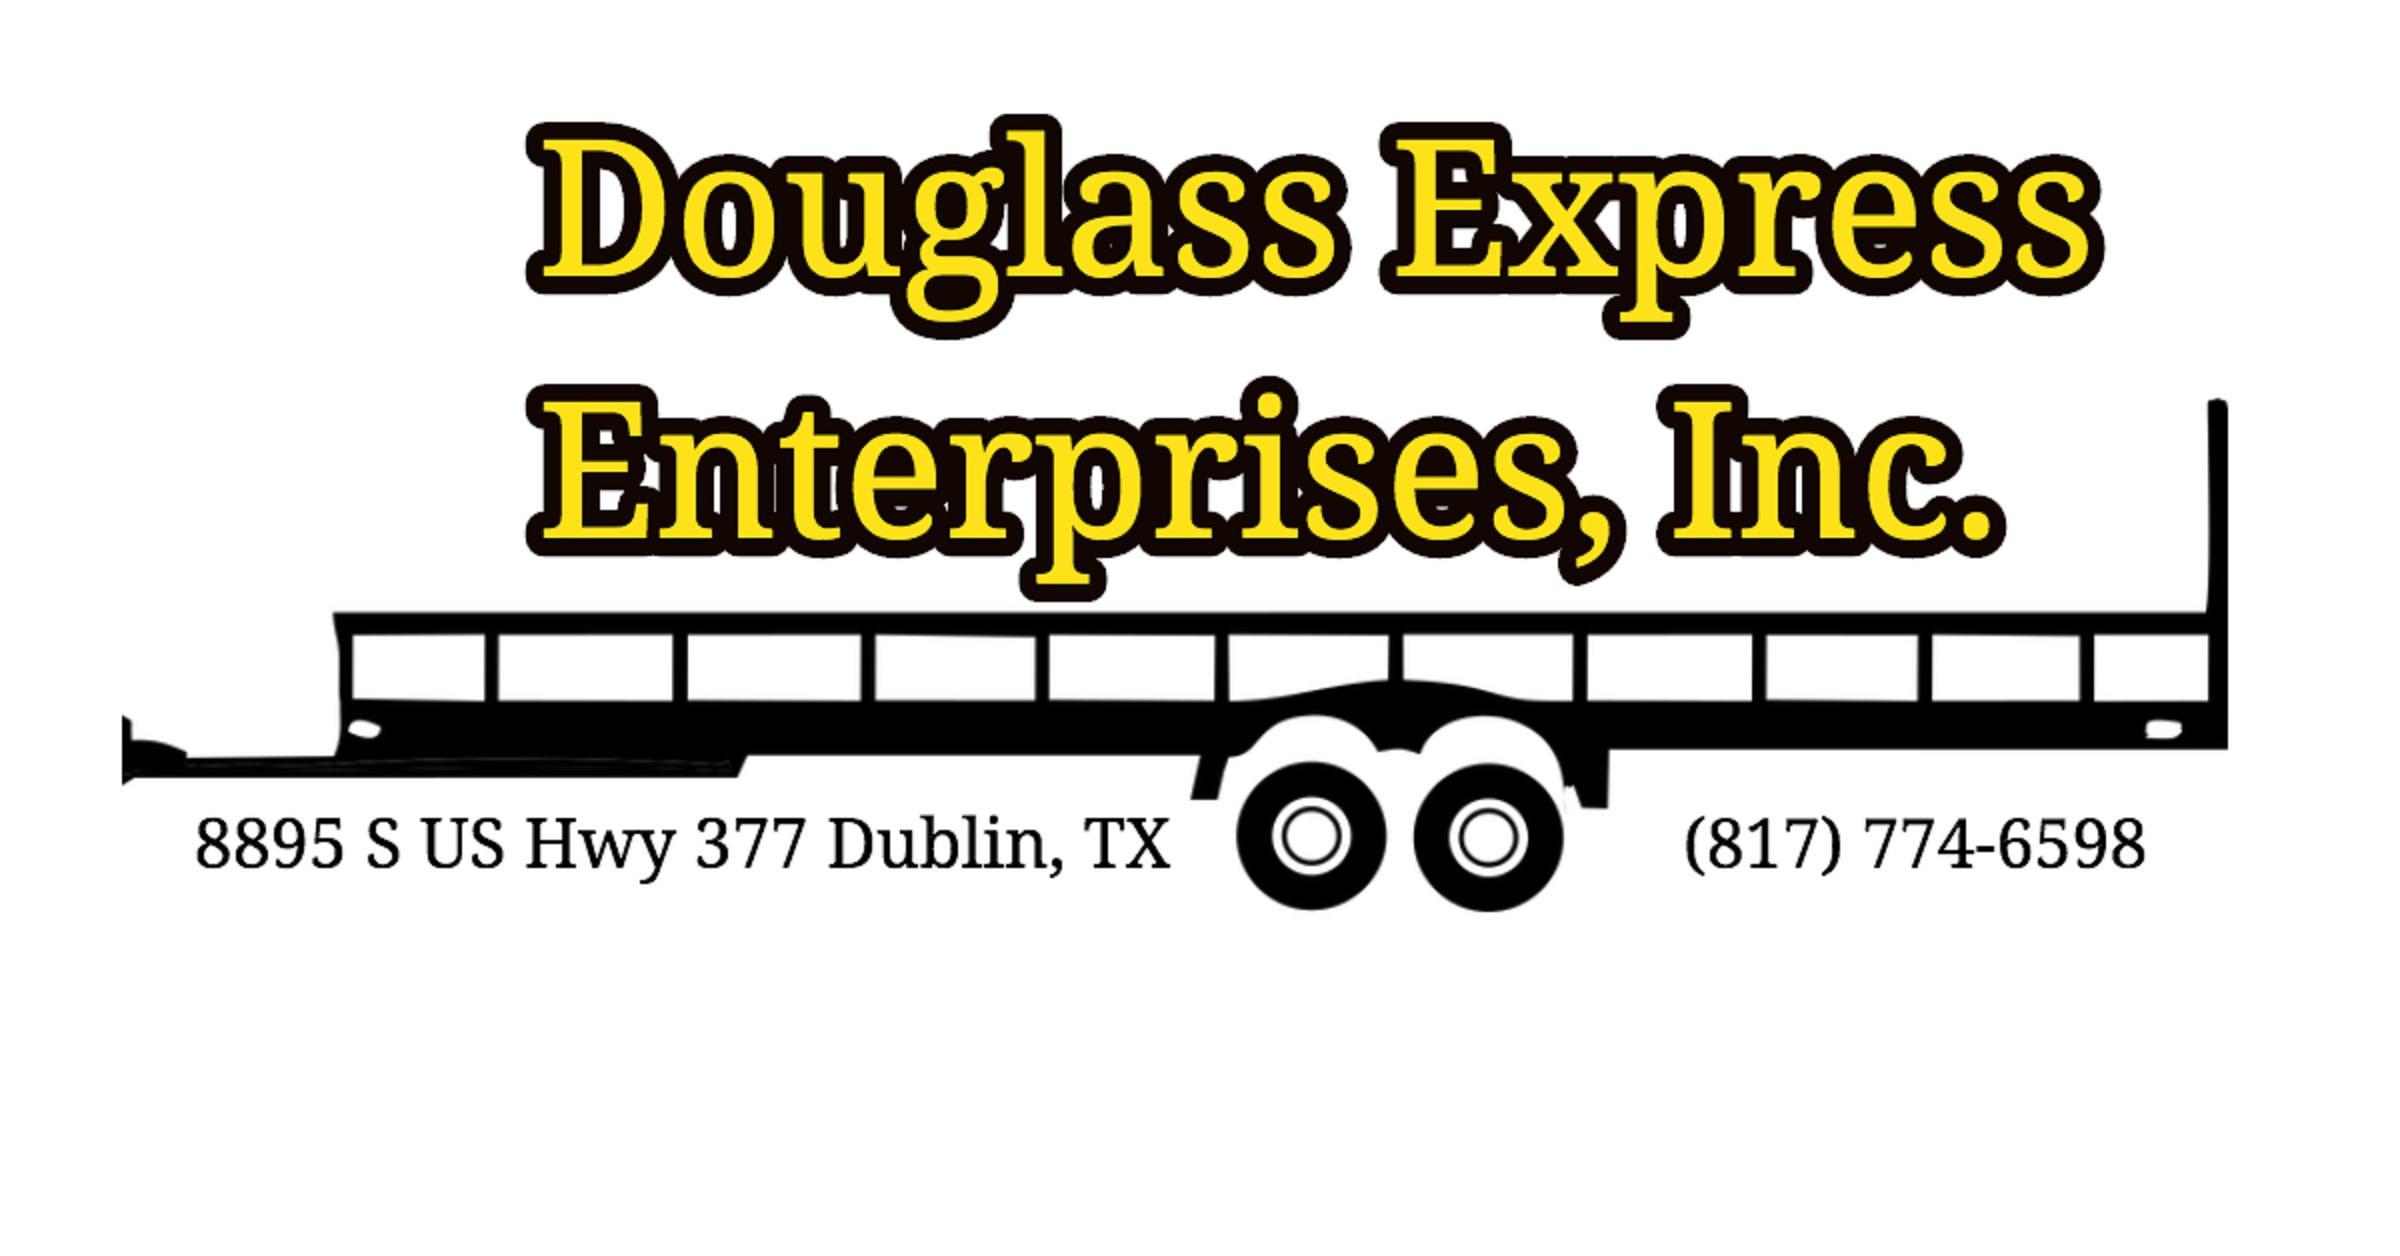 Douglass Express Enterprises, Inc